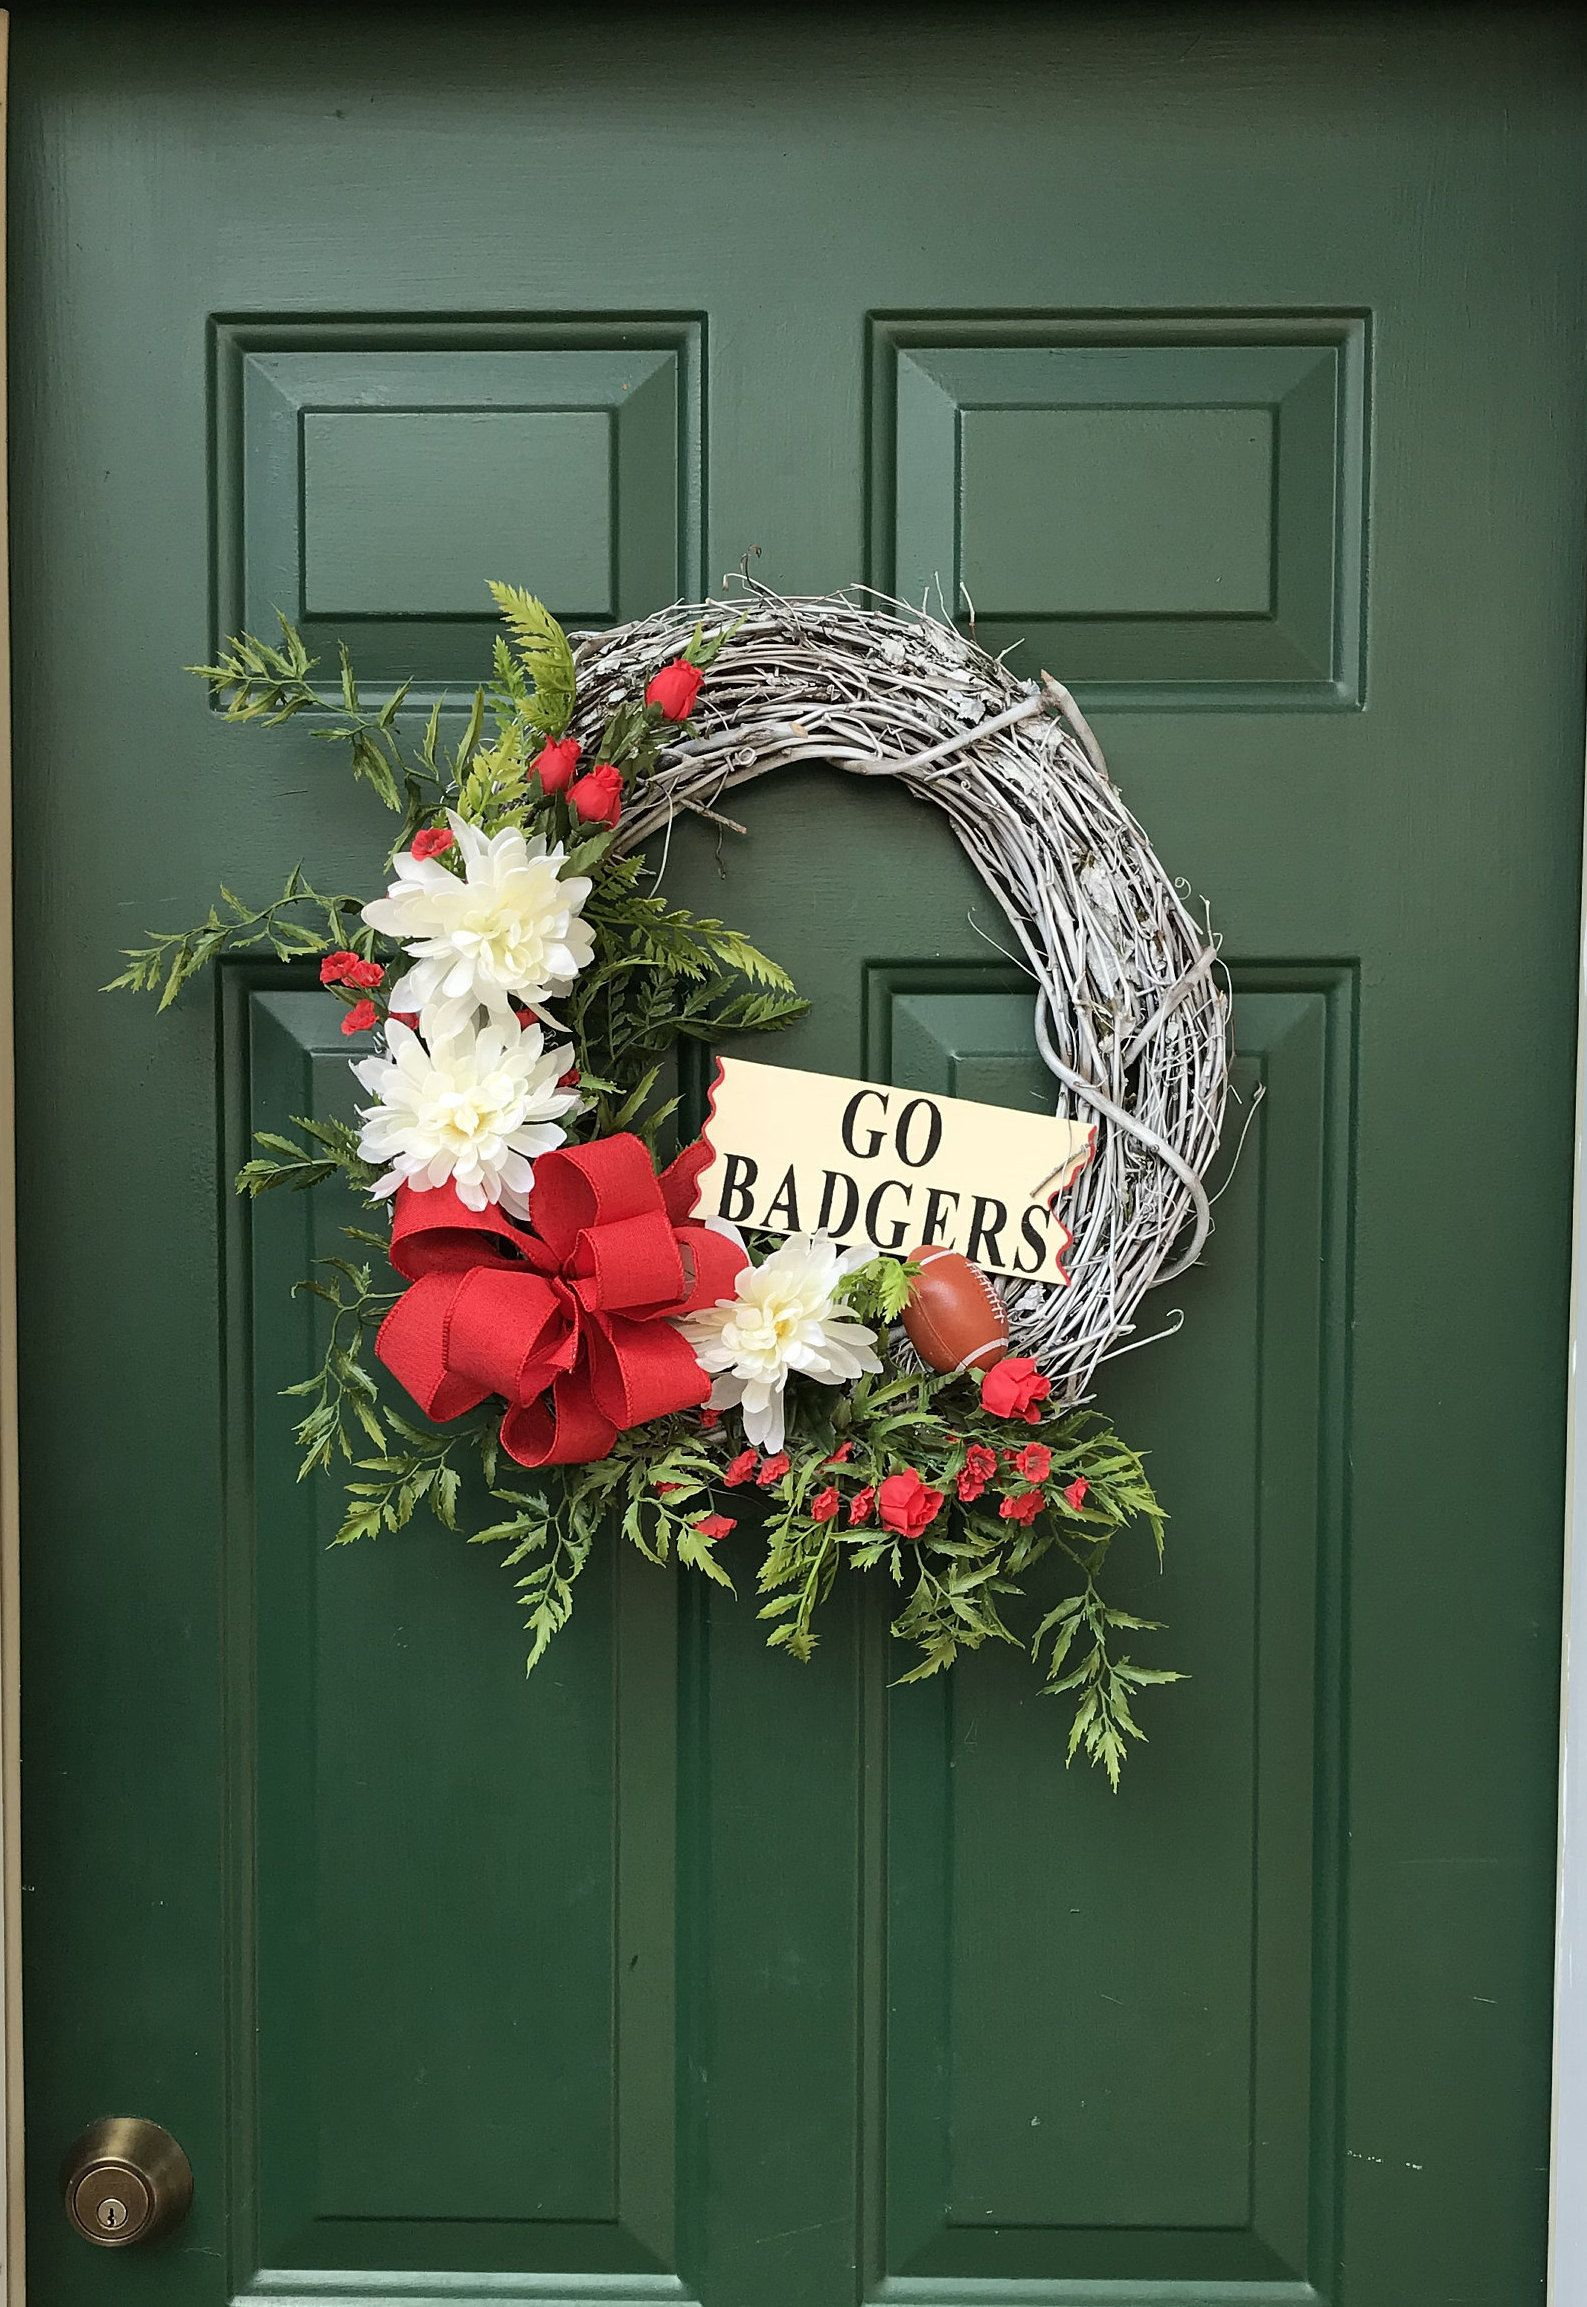 Photo of GO BADGERS Wisconsin Badger Wreath-Wisconsin Badger Front Door Wreath-Wisconsin Badger Vine Wreath-Badger Football Front Door Wreath